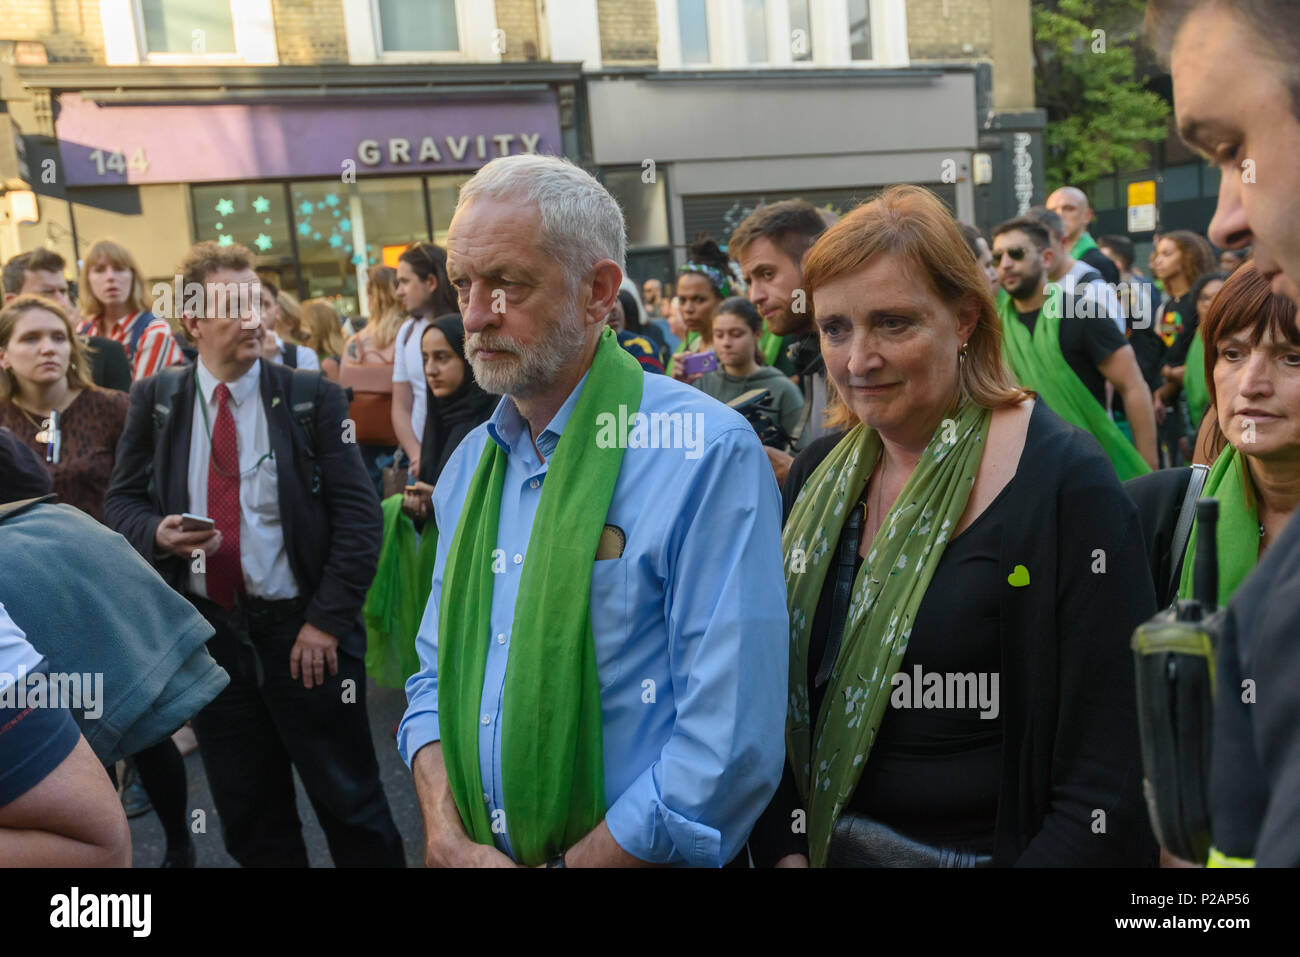 London, UK. 14th June 2018. Labour leader Jeremy Corbyn and local Labour MP Emma Dent Coad wait their turn to shake hands with firefighters at Ladbroke Grove as thousands walk in silence from close to Grenfell Tower remembering the victims of the disaster on the first anniversary of the disastrous fire which killed 72 and left survivors traumatised. Many of those made homeless by the fire are still in temporary accomodation a year later despite promises mde by Theresa May and Kensington & Chelsea council, who many fell have failed the local community both before and after the fire. They say ha - Stock Image